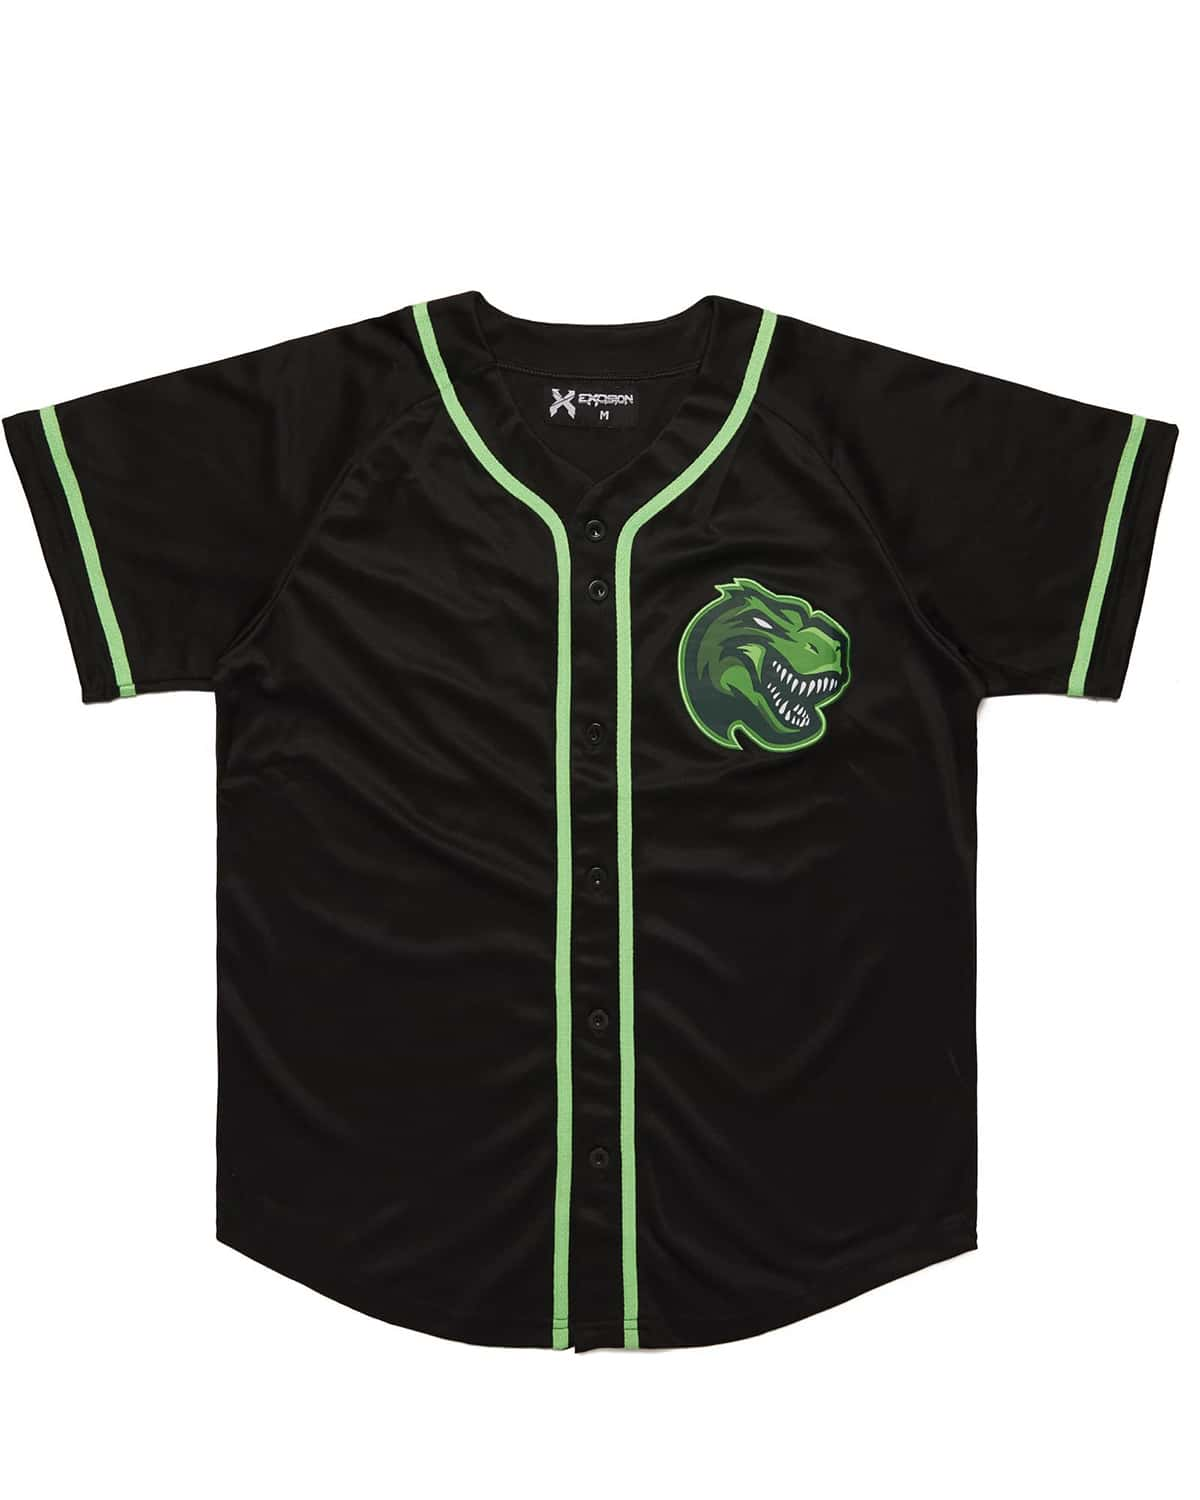 Excision Rex Baseball Jersey - Green